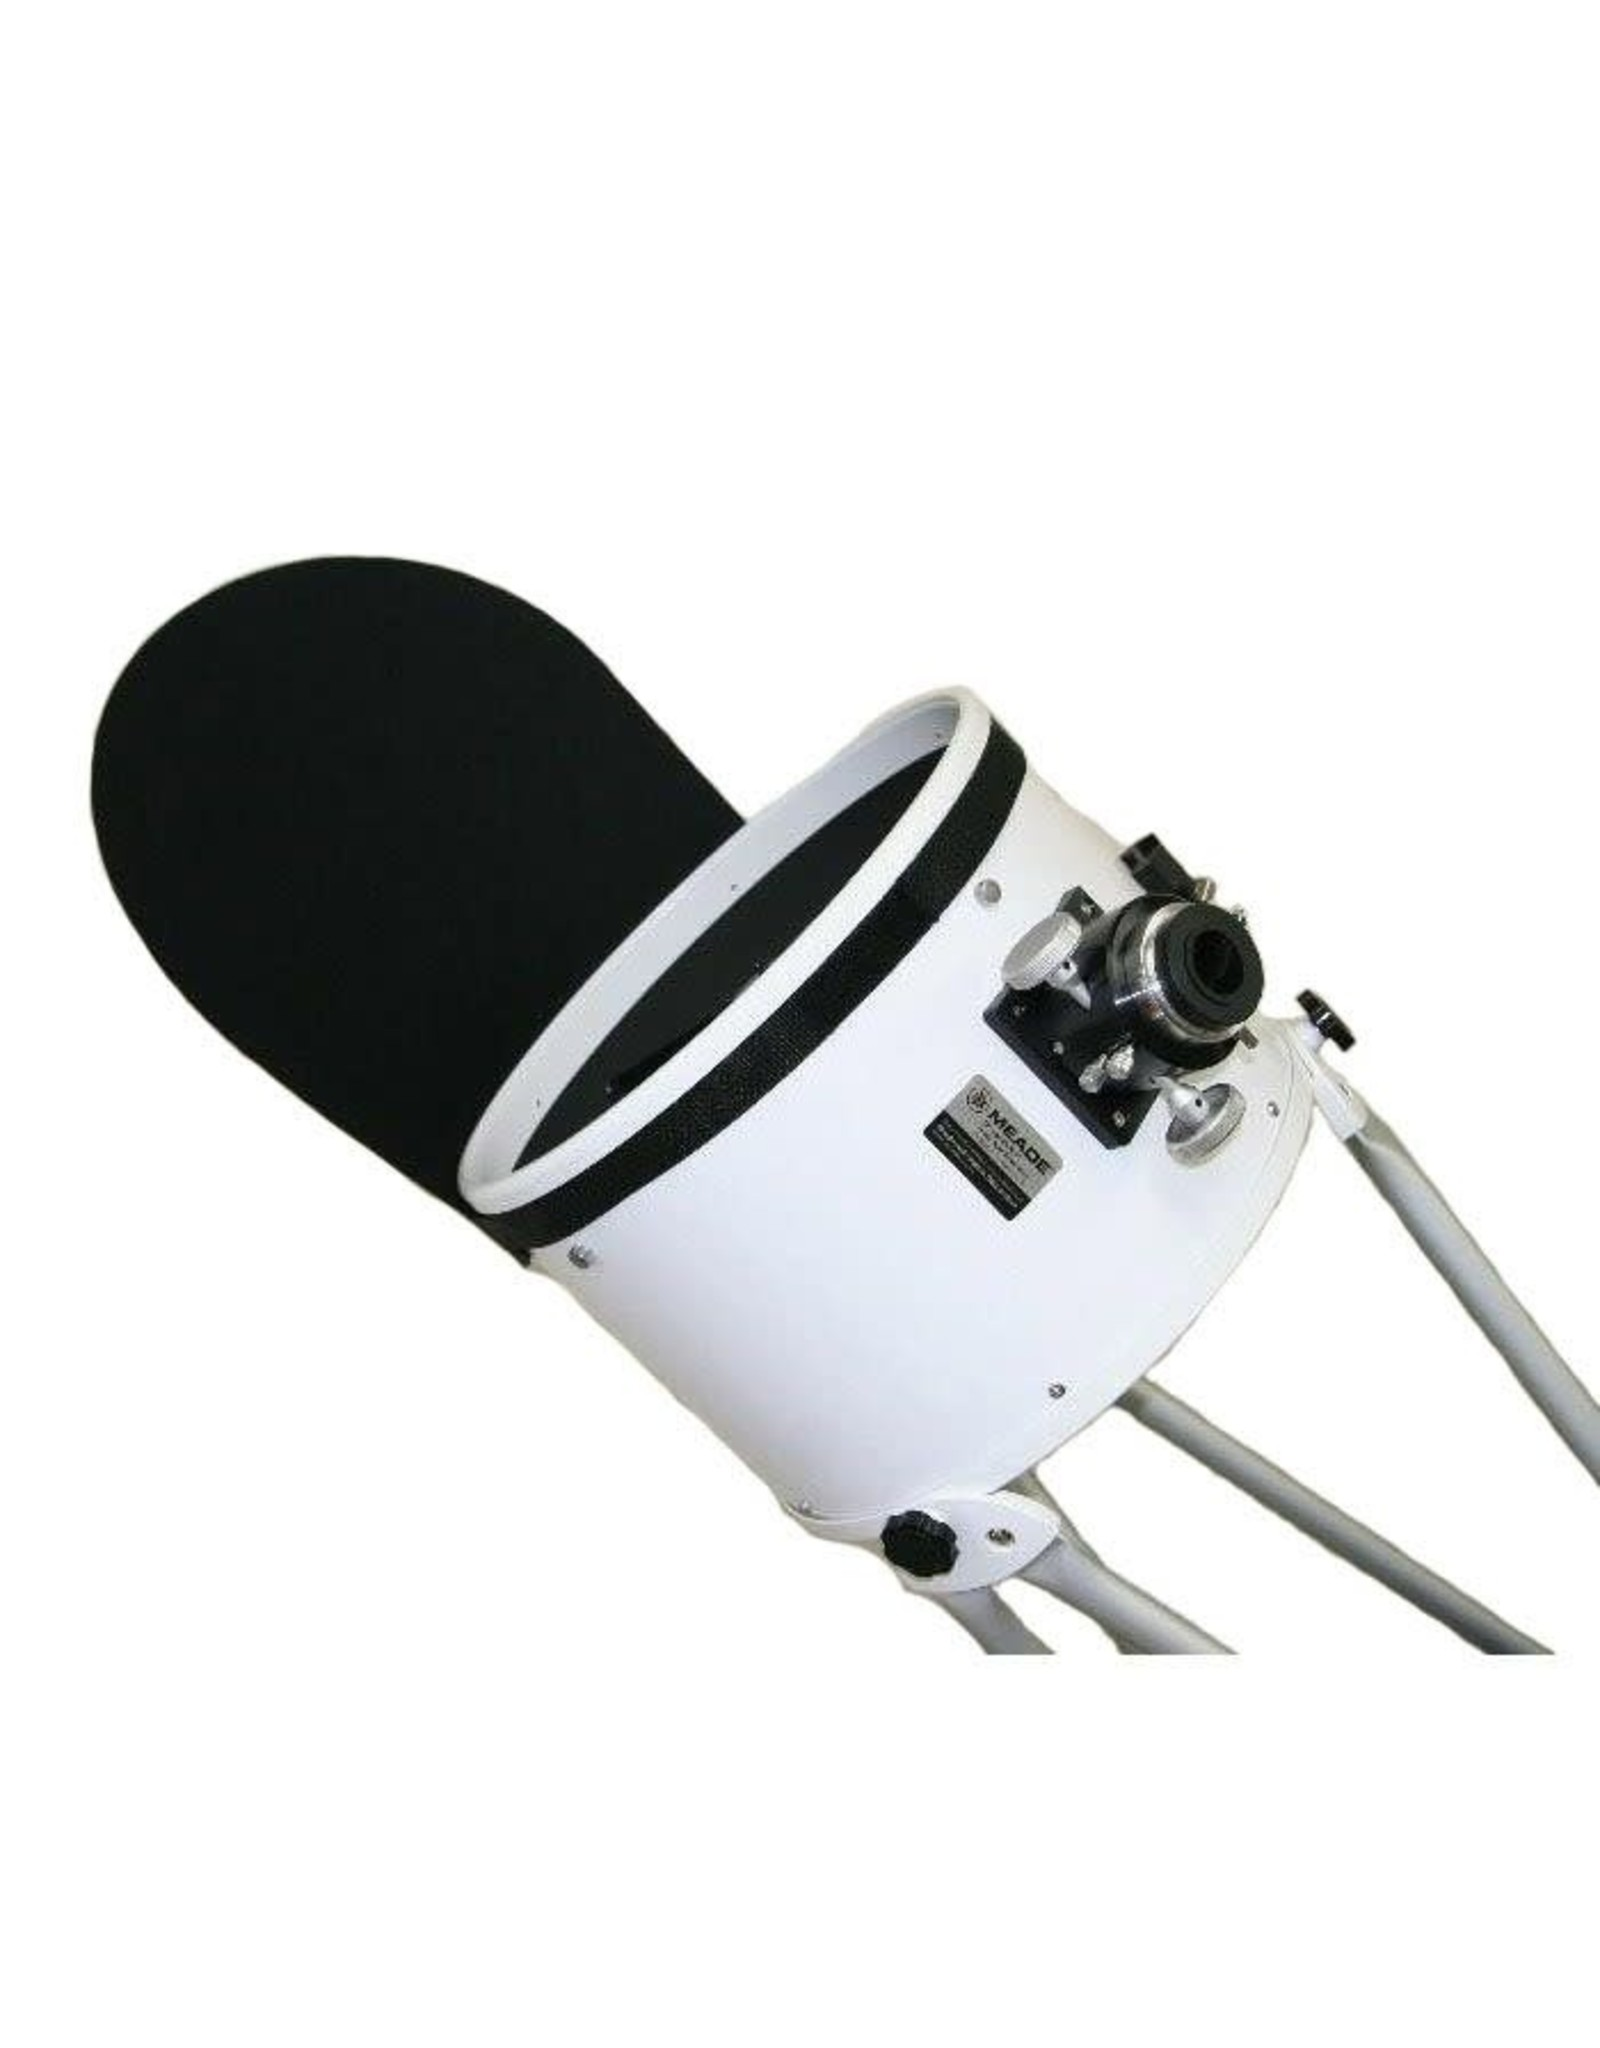 "Astrozap AstroZap Light Shield for 12"" Dobsonian Telescopes - AZ1203"